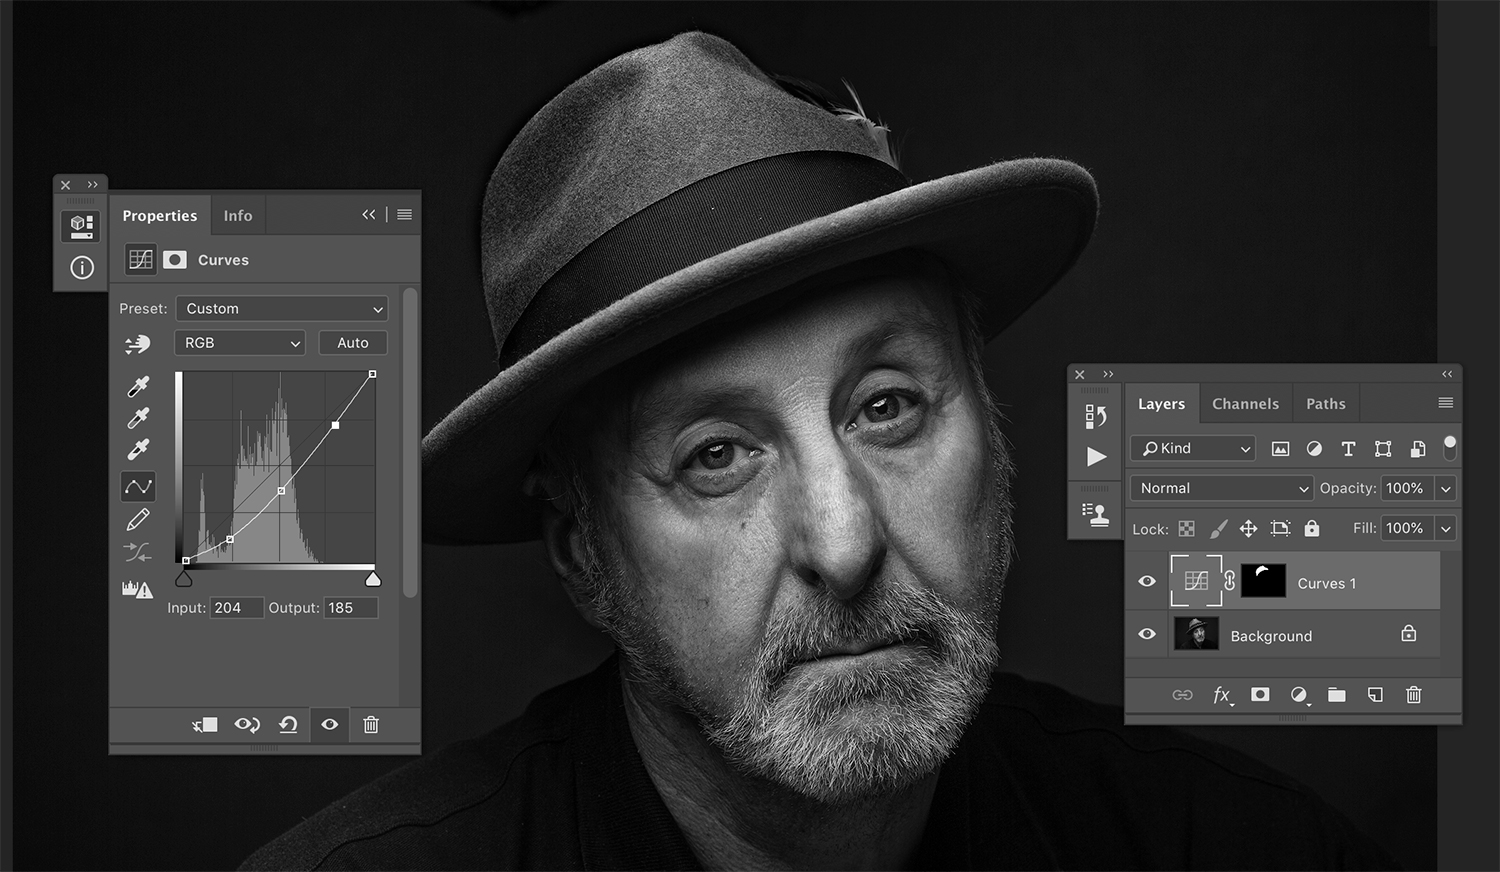 Using layer masks in processing black and white images